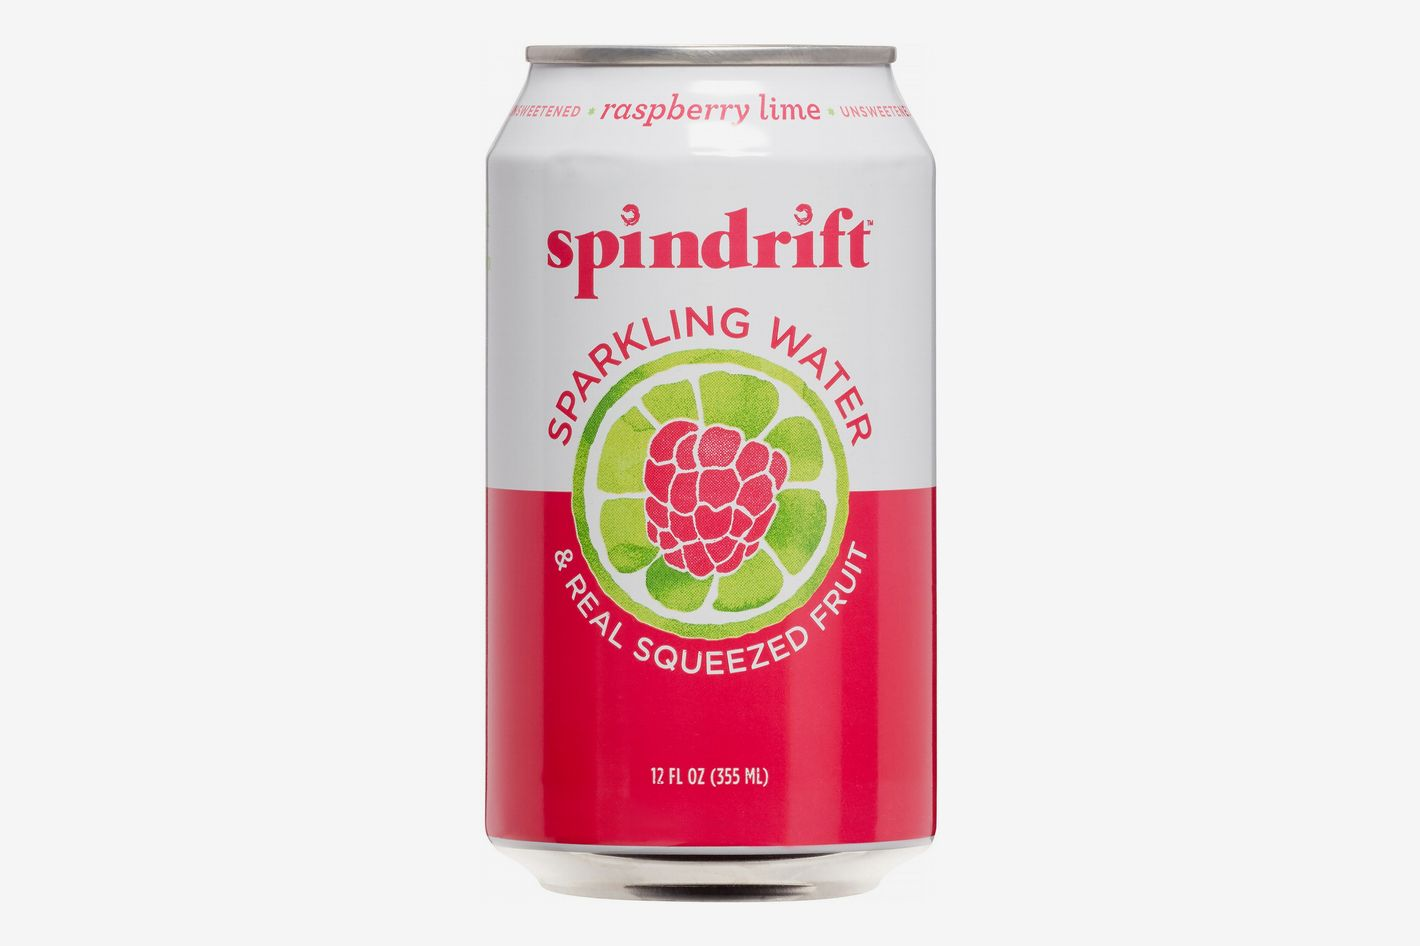 Spindrift Raspberry Lime Sparkling Water, 4pk 12 Fl Oz